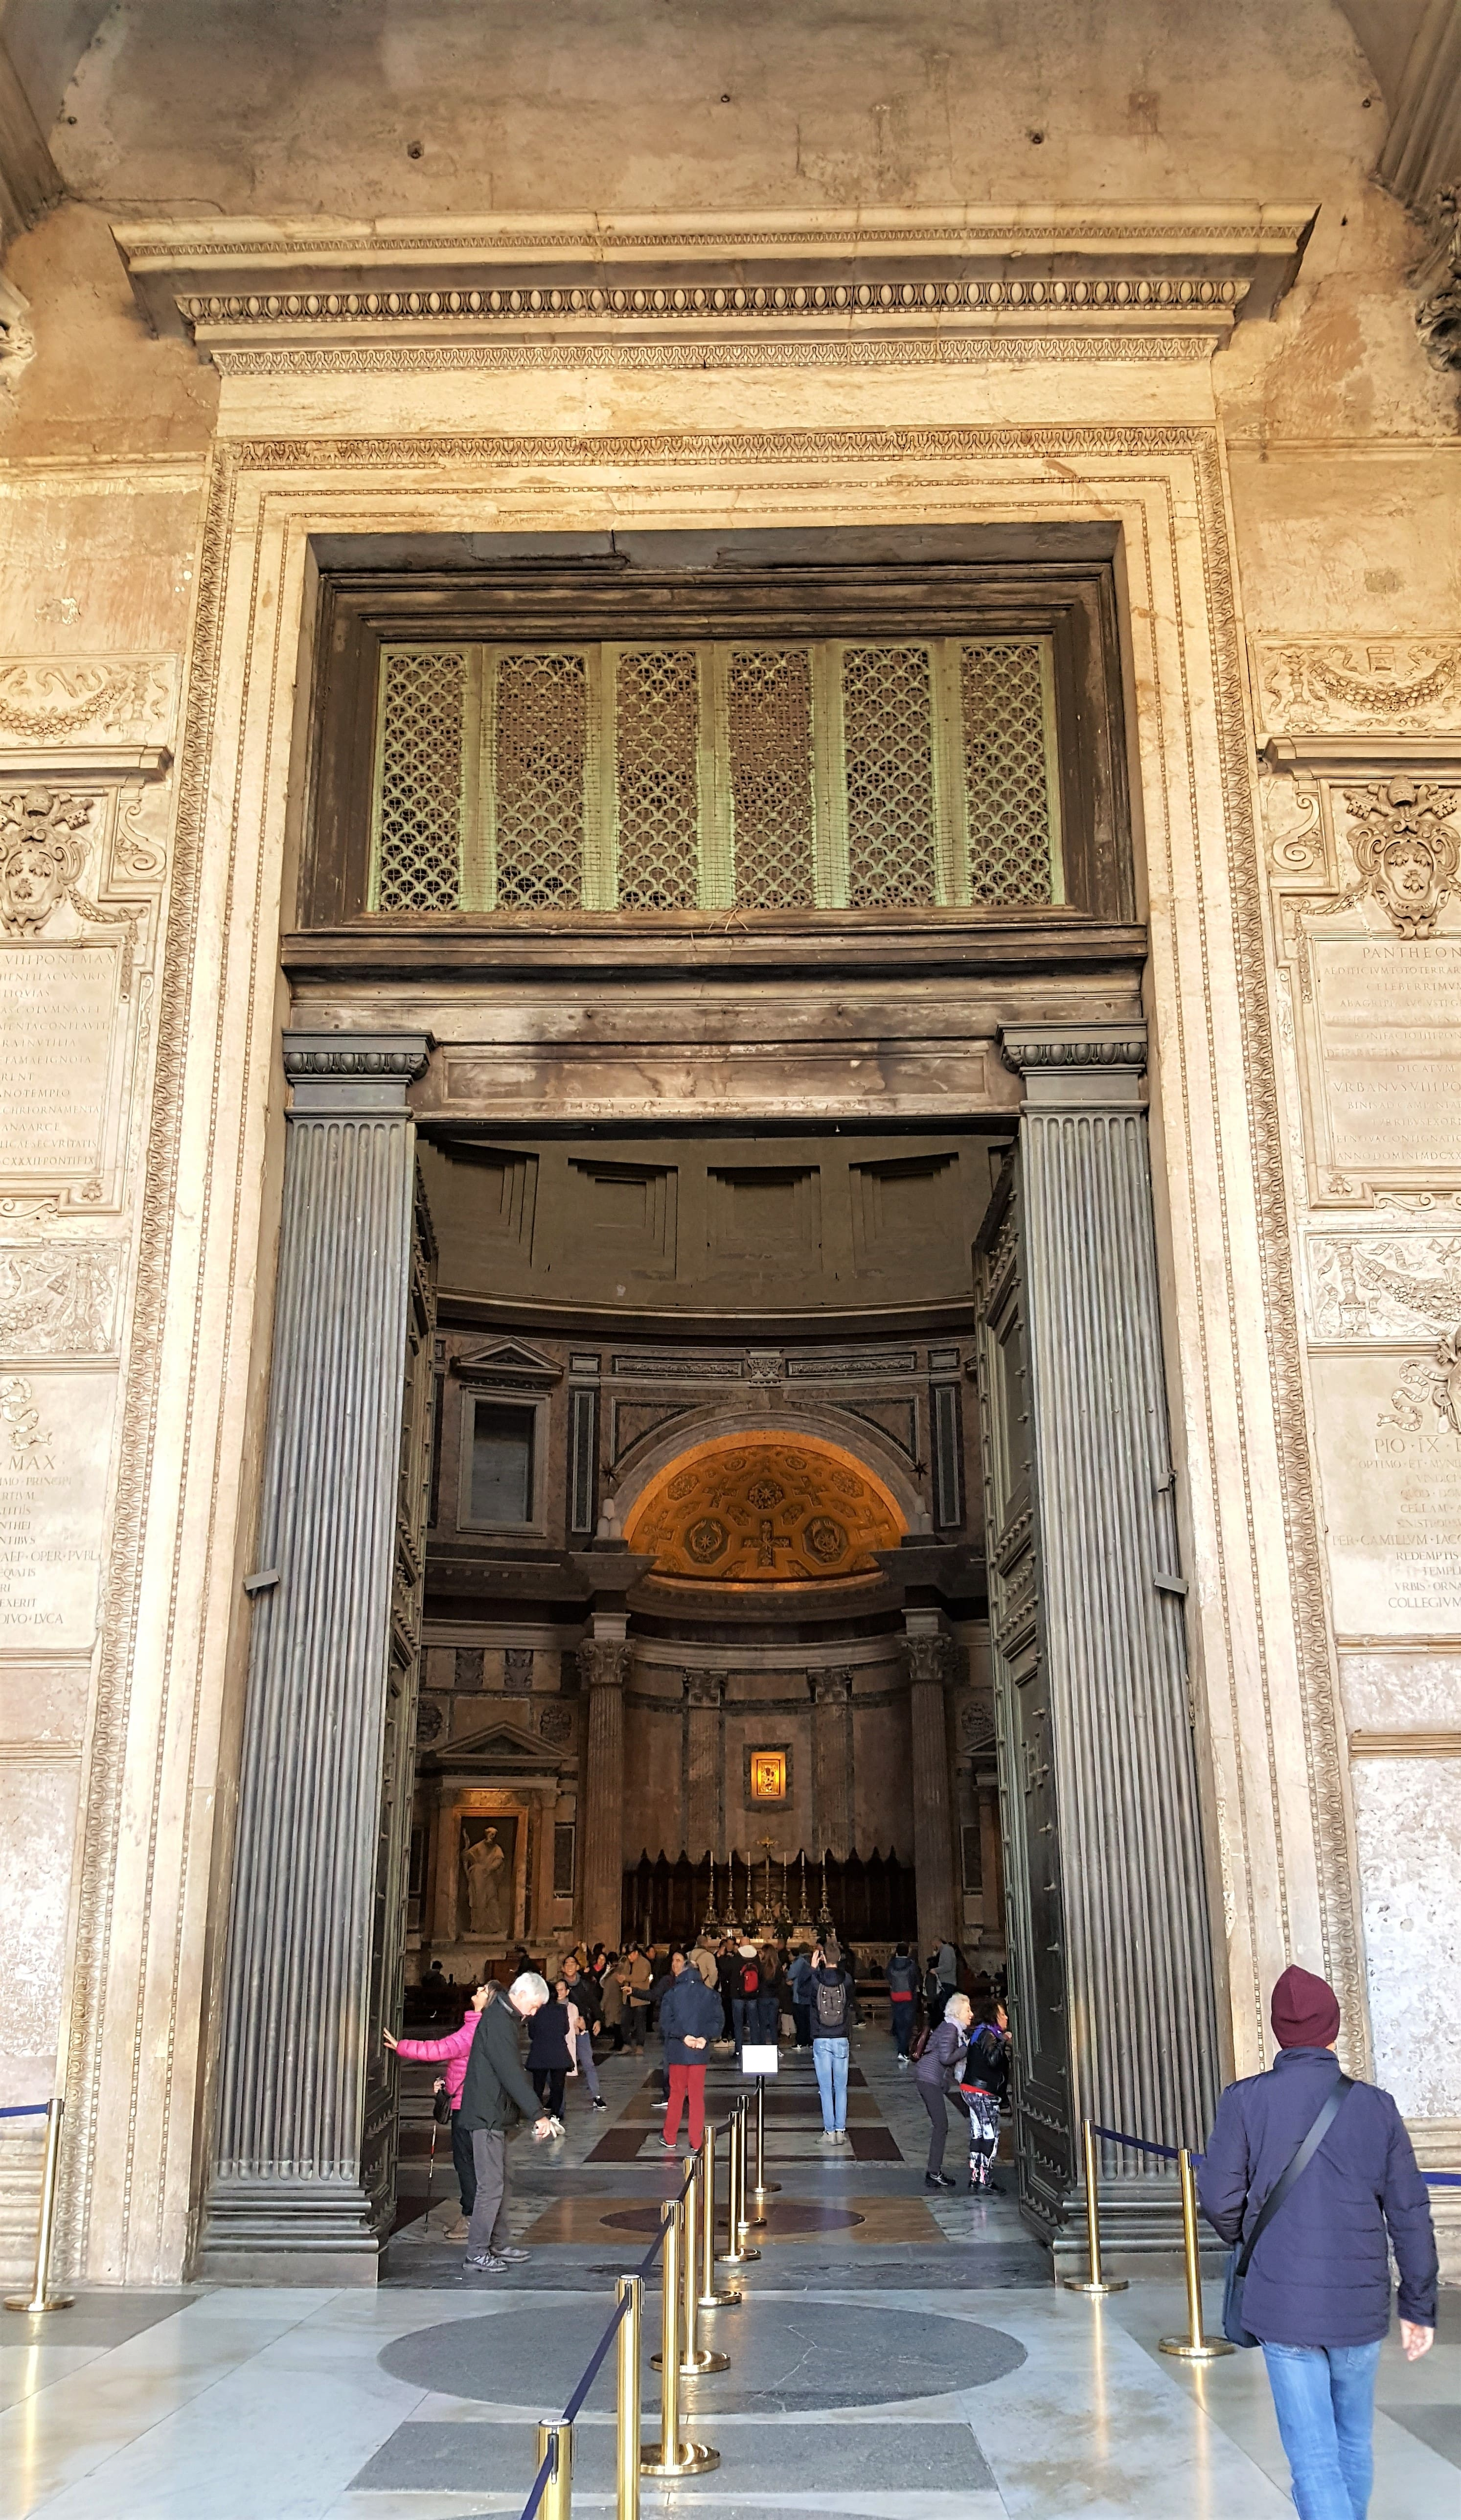 Entry of the Pantheon